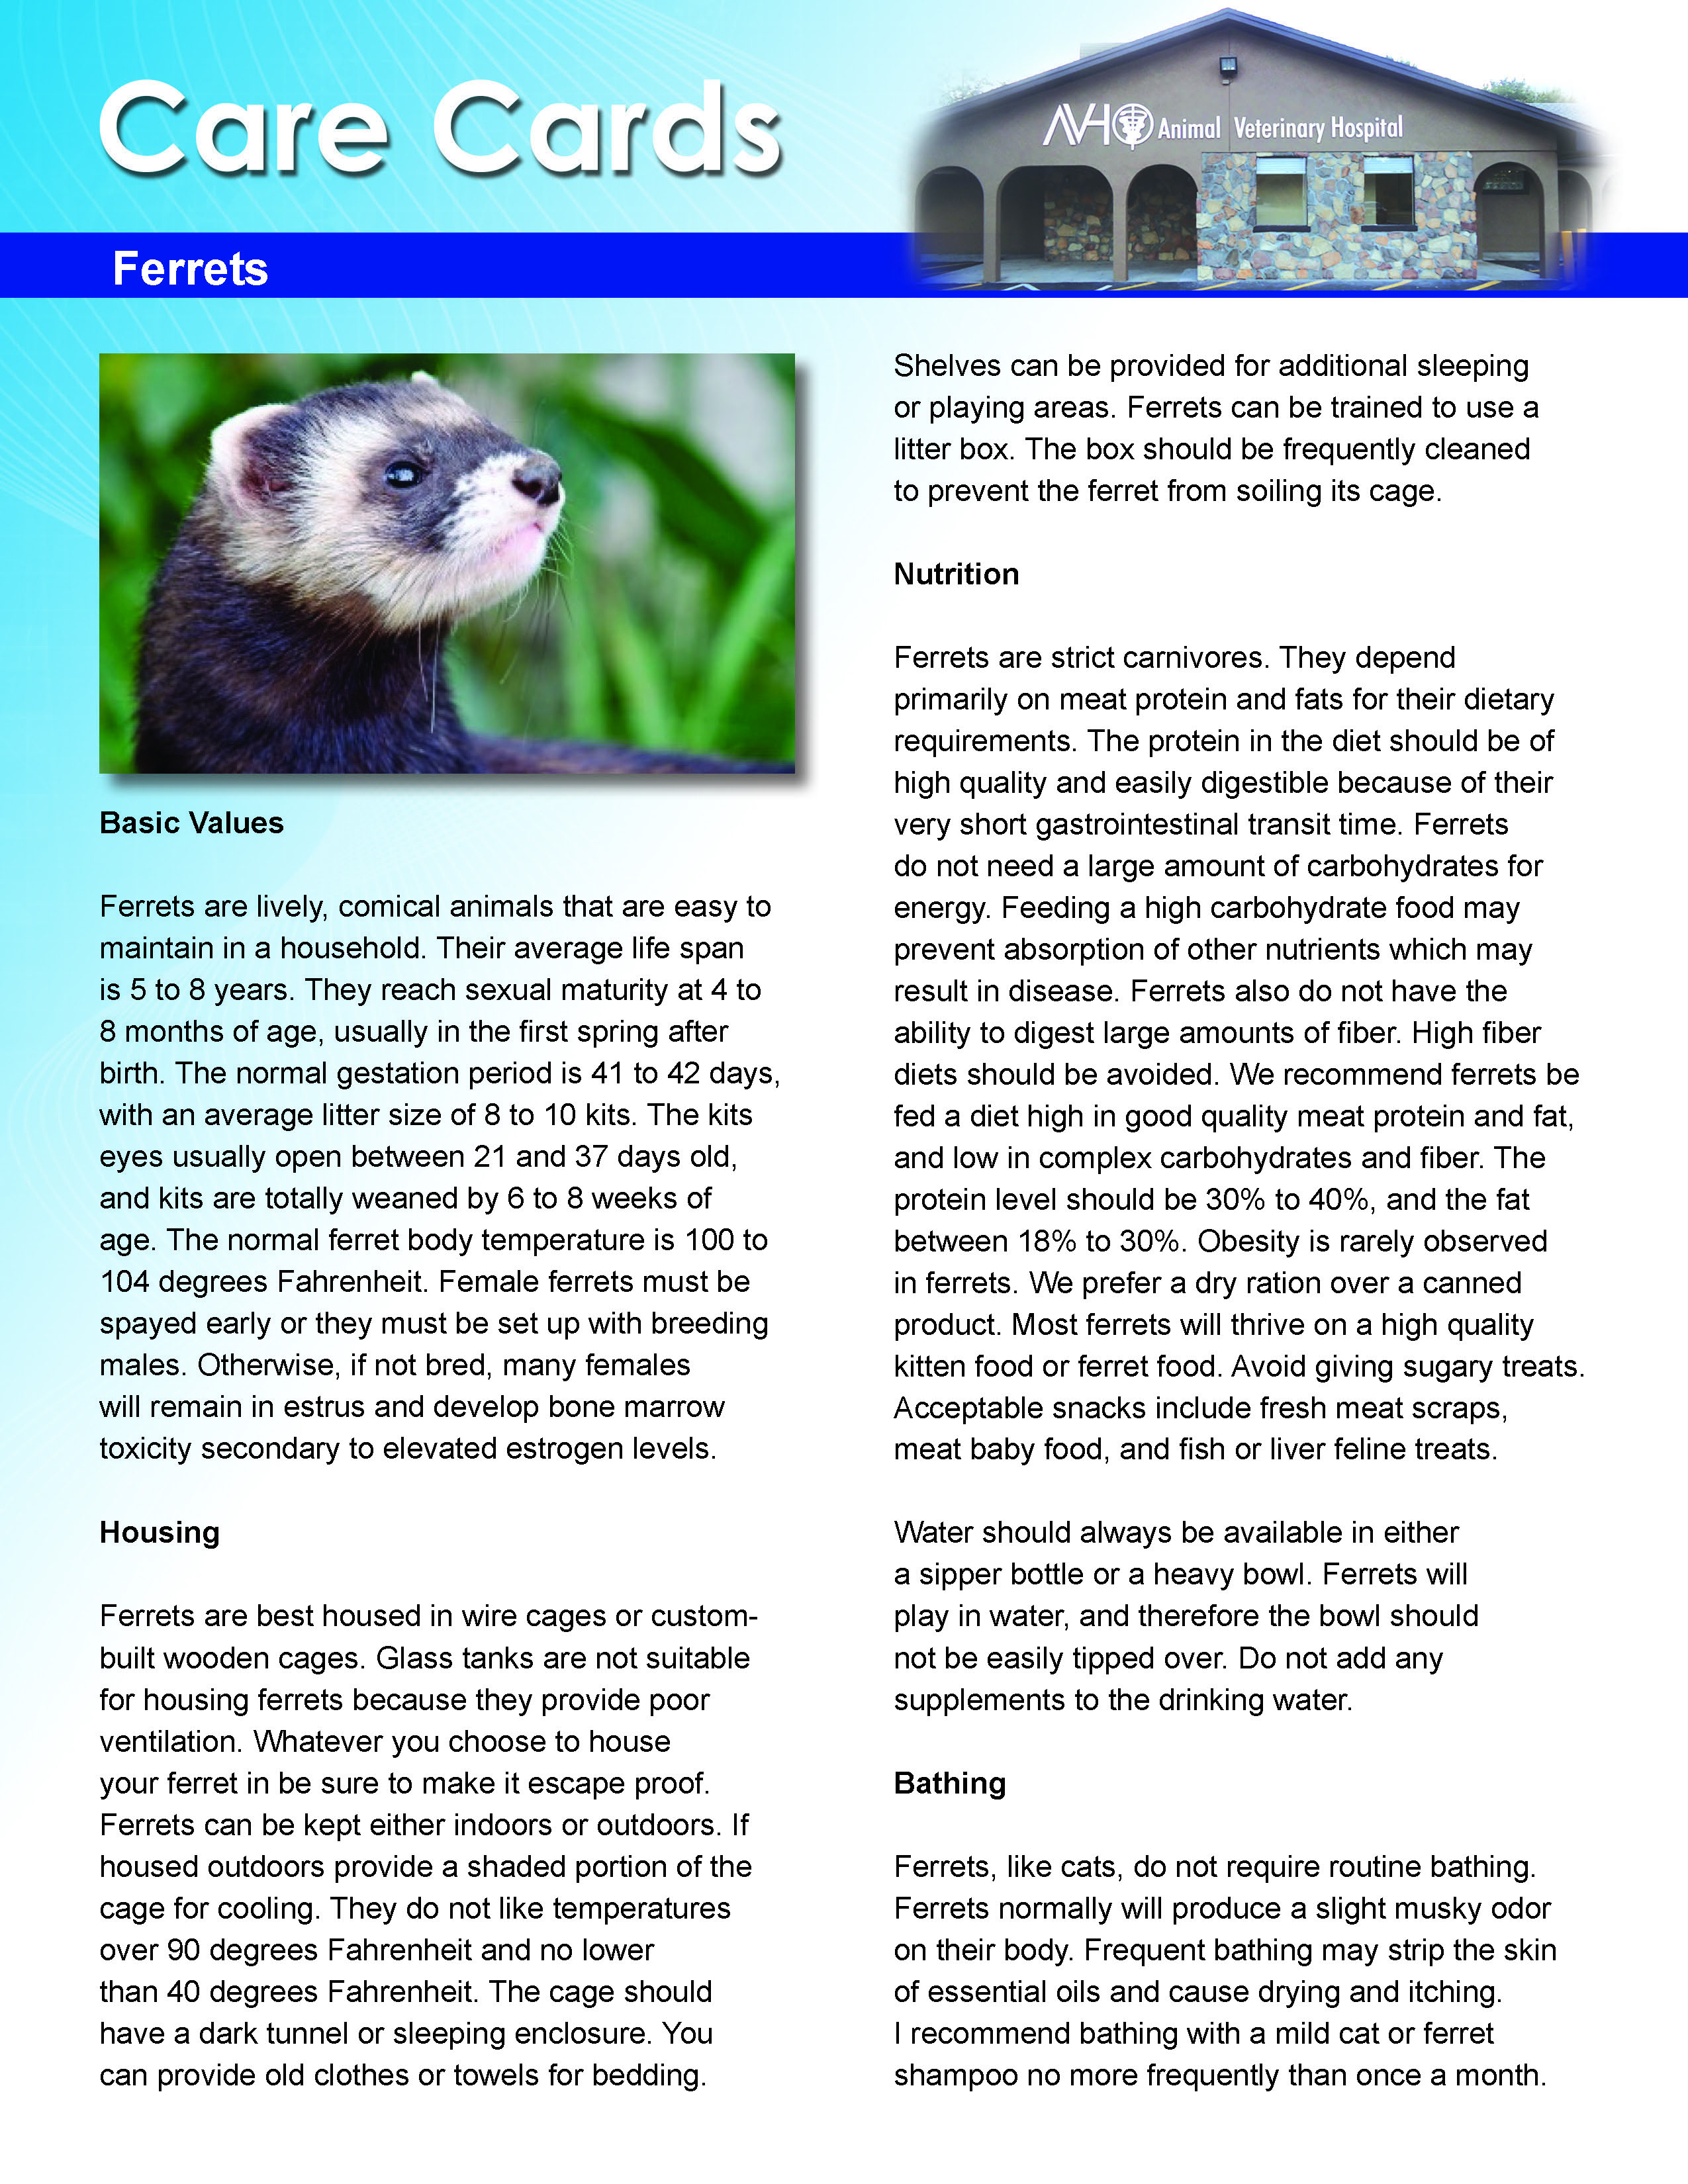 Ferret Care Card